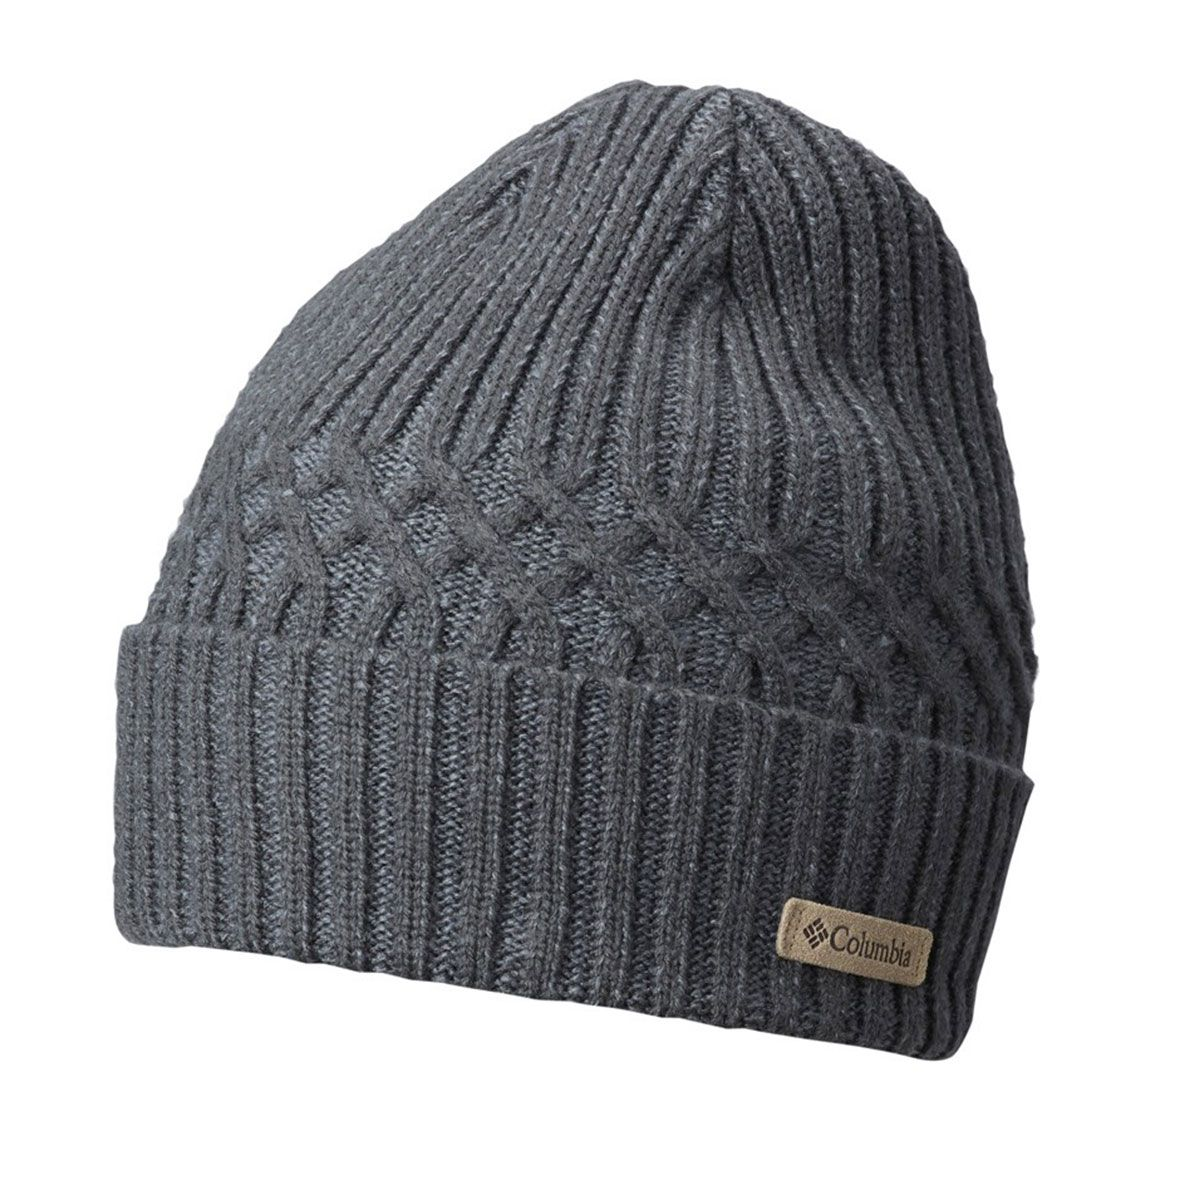 Gorro Columbia Raven Ridge Cabled Beanie